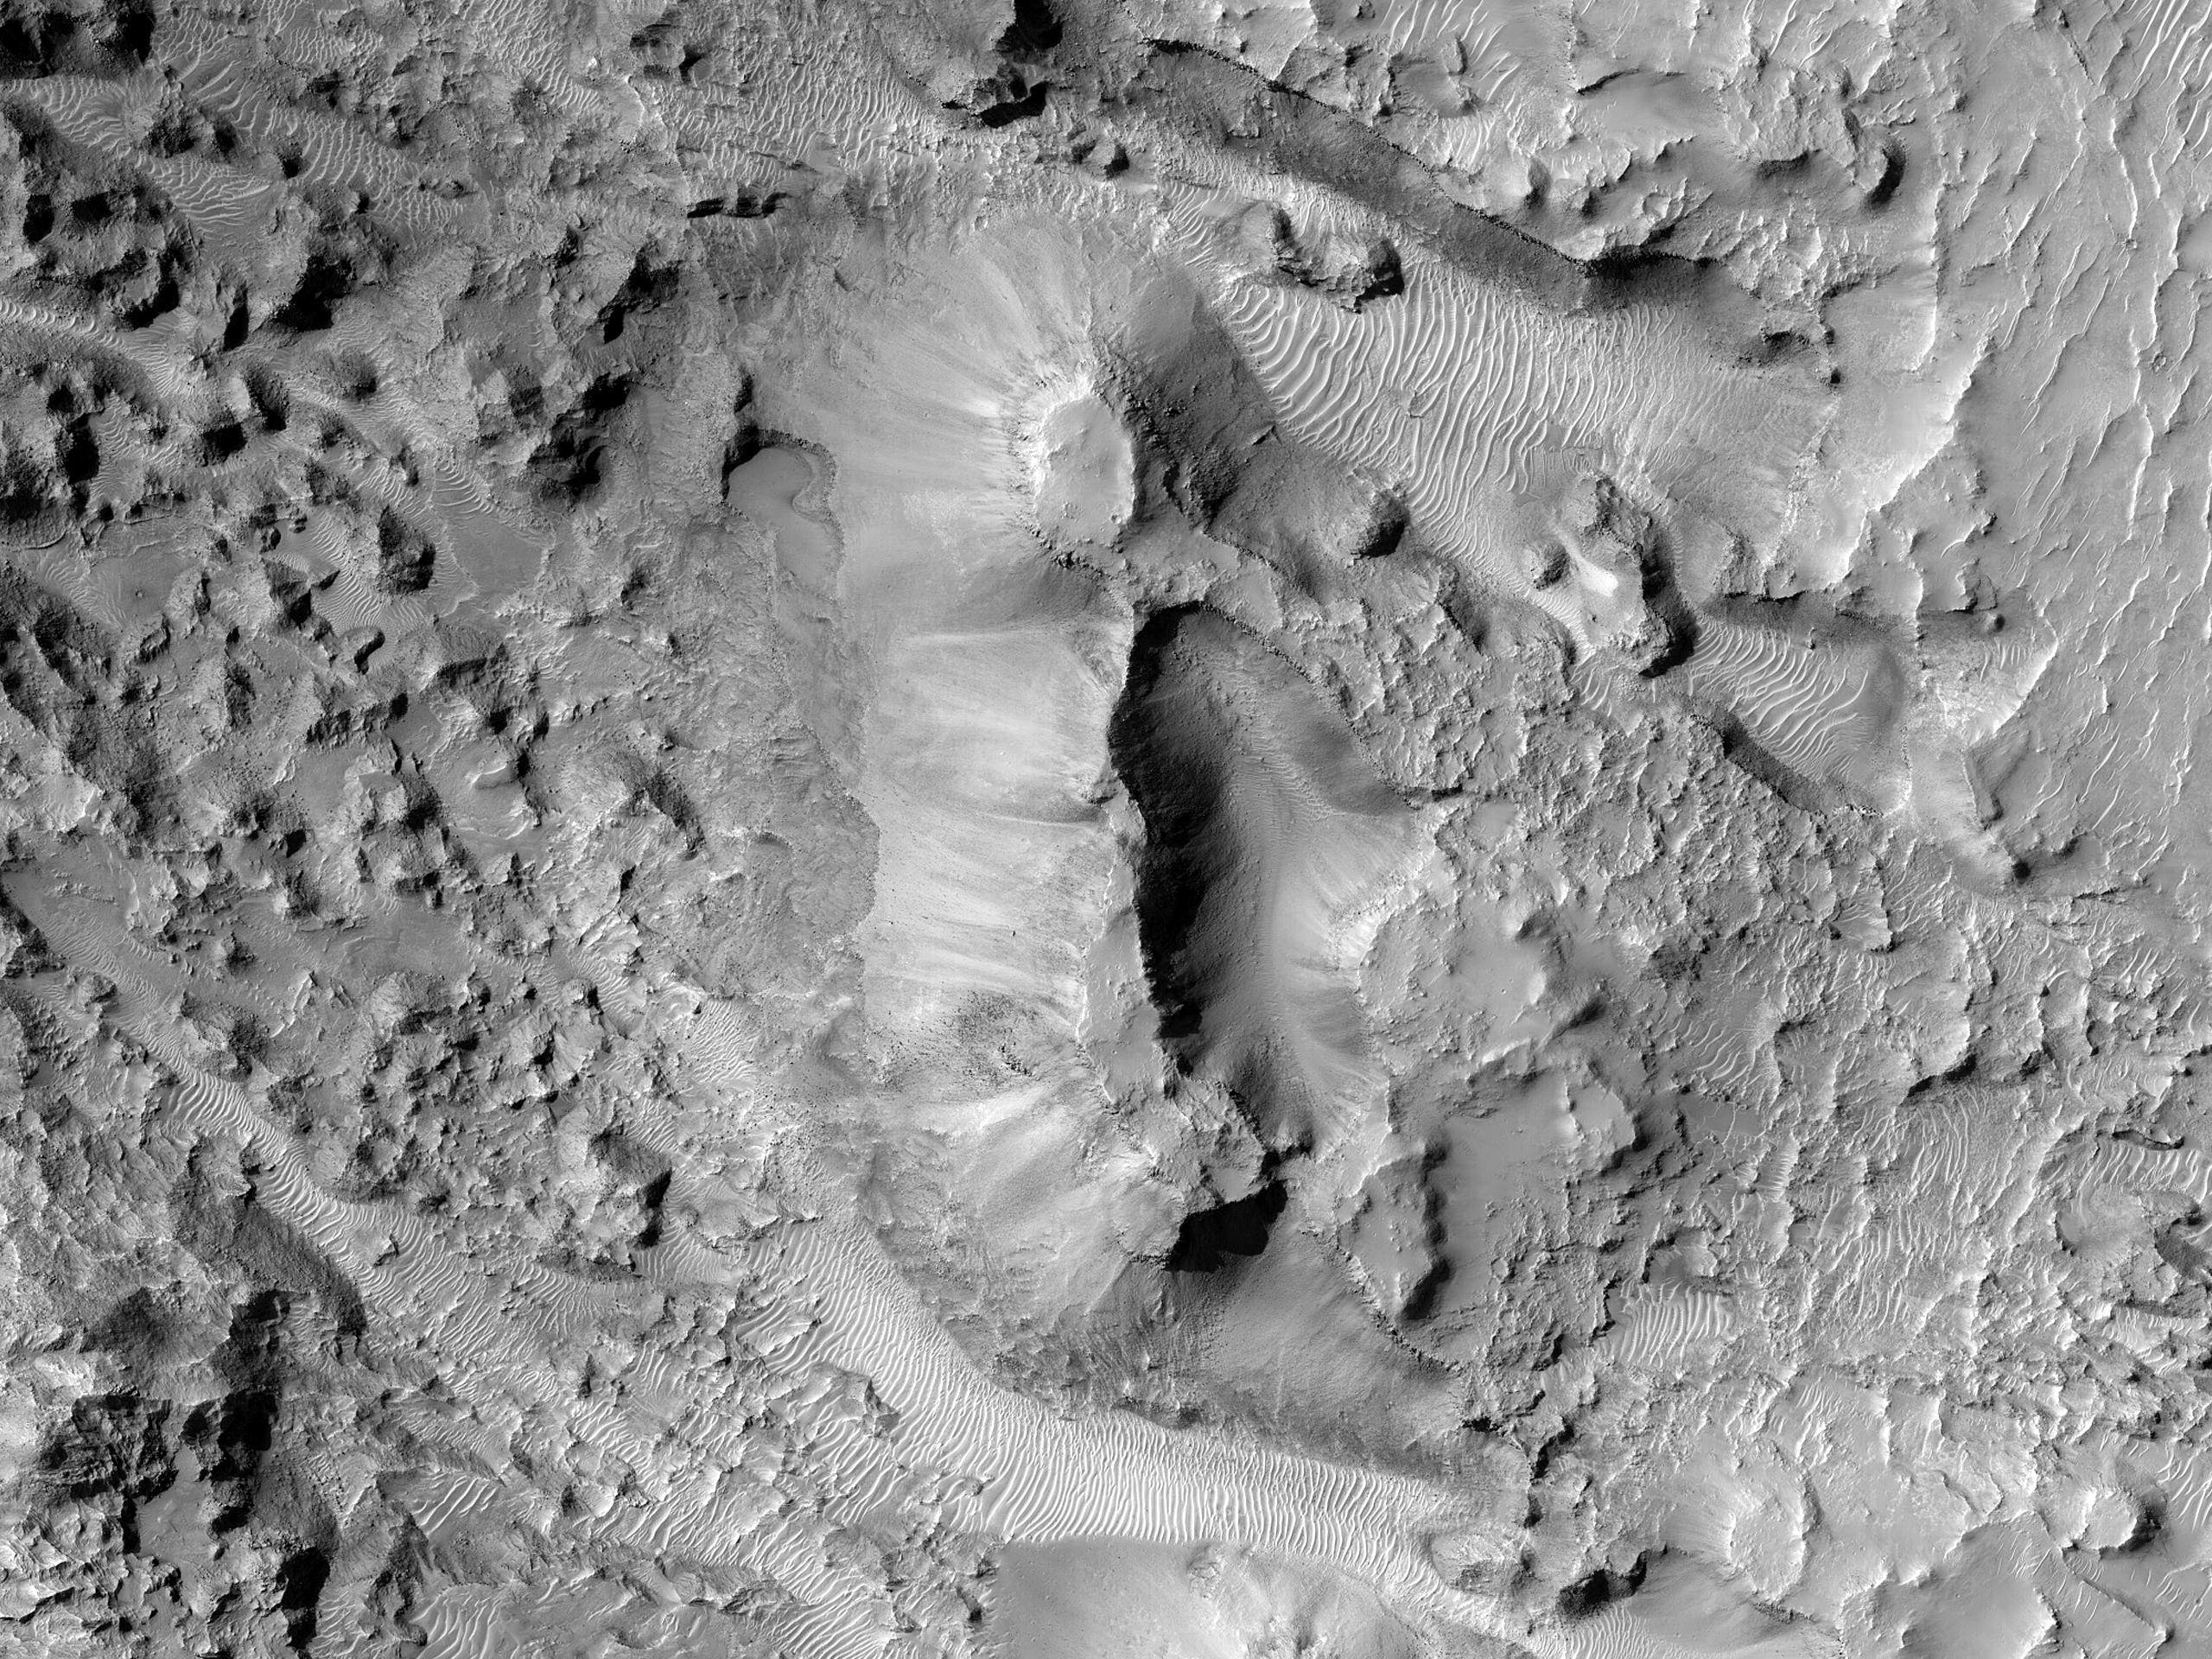 Pits on a Crater Floor